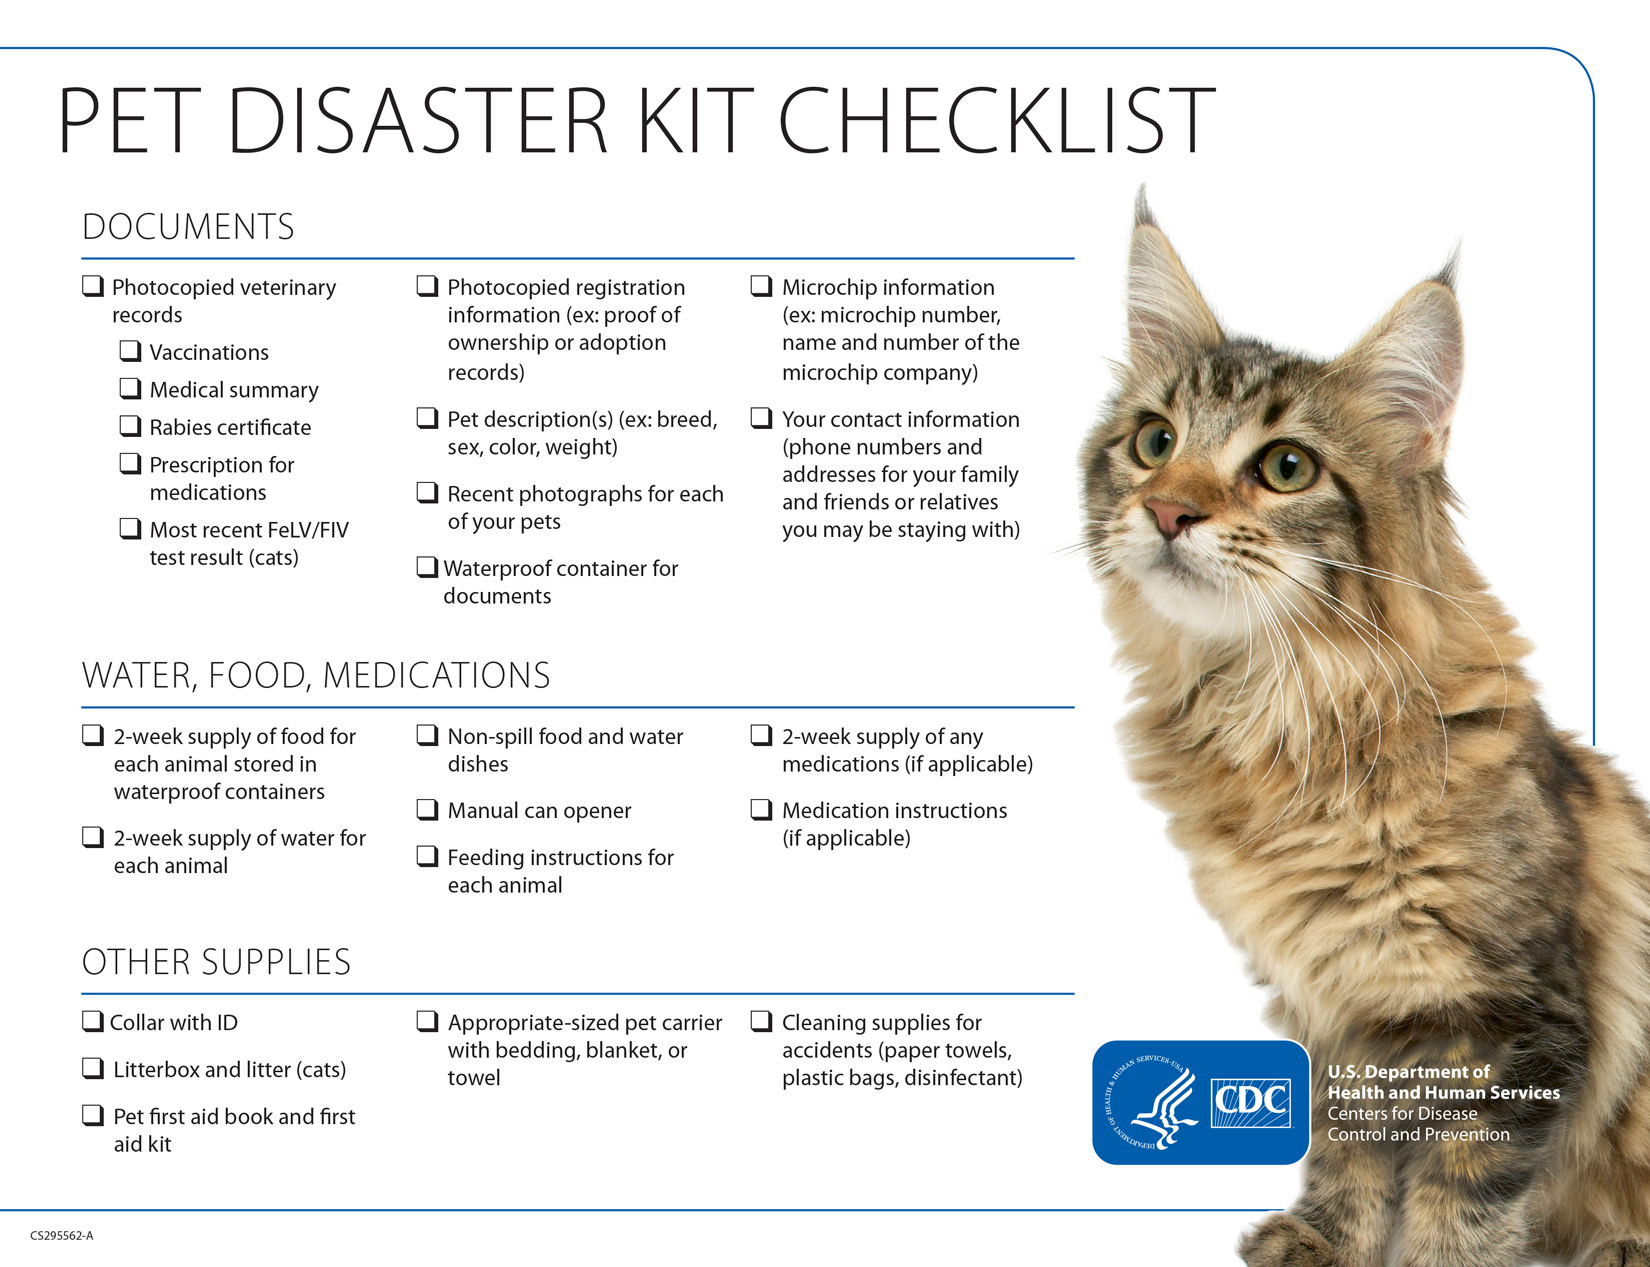 Pet Disaster Kit Checklist for Cats